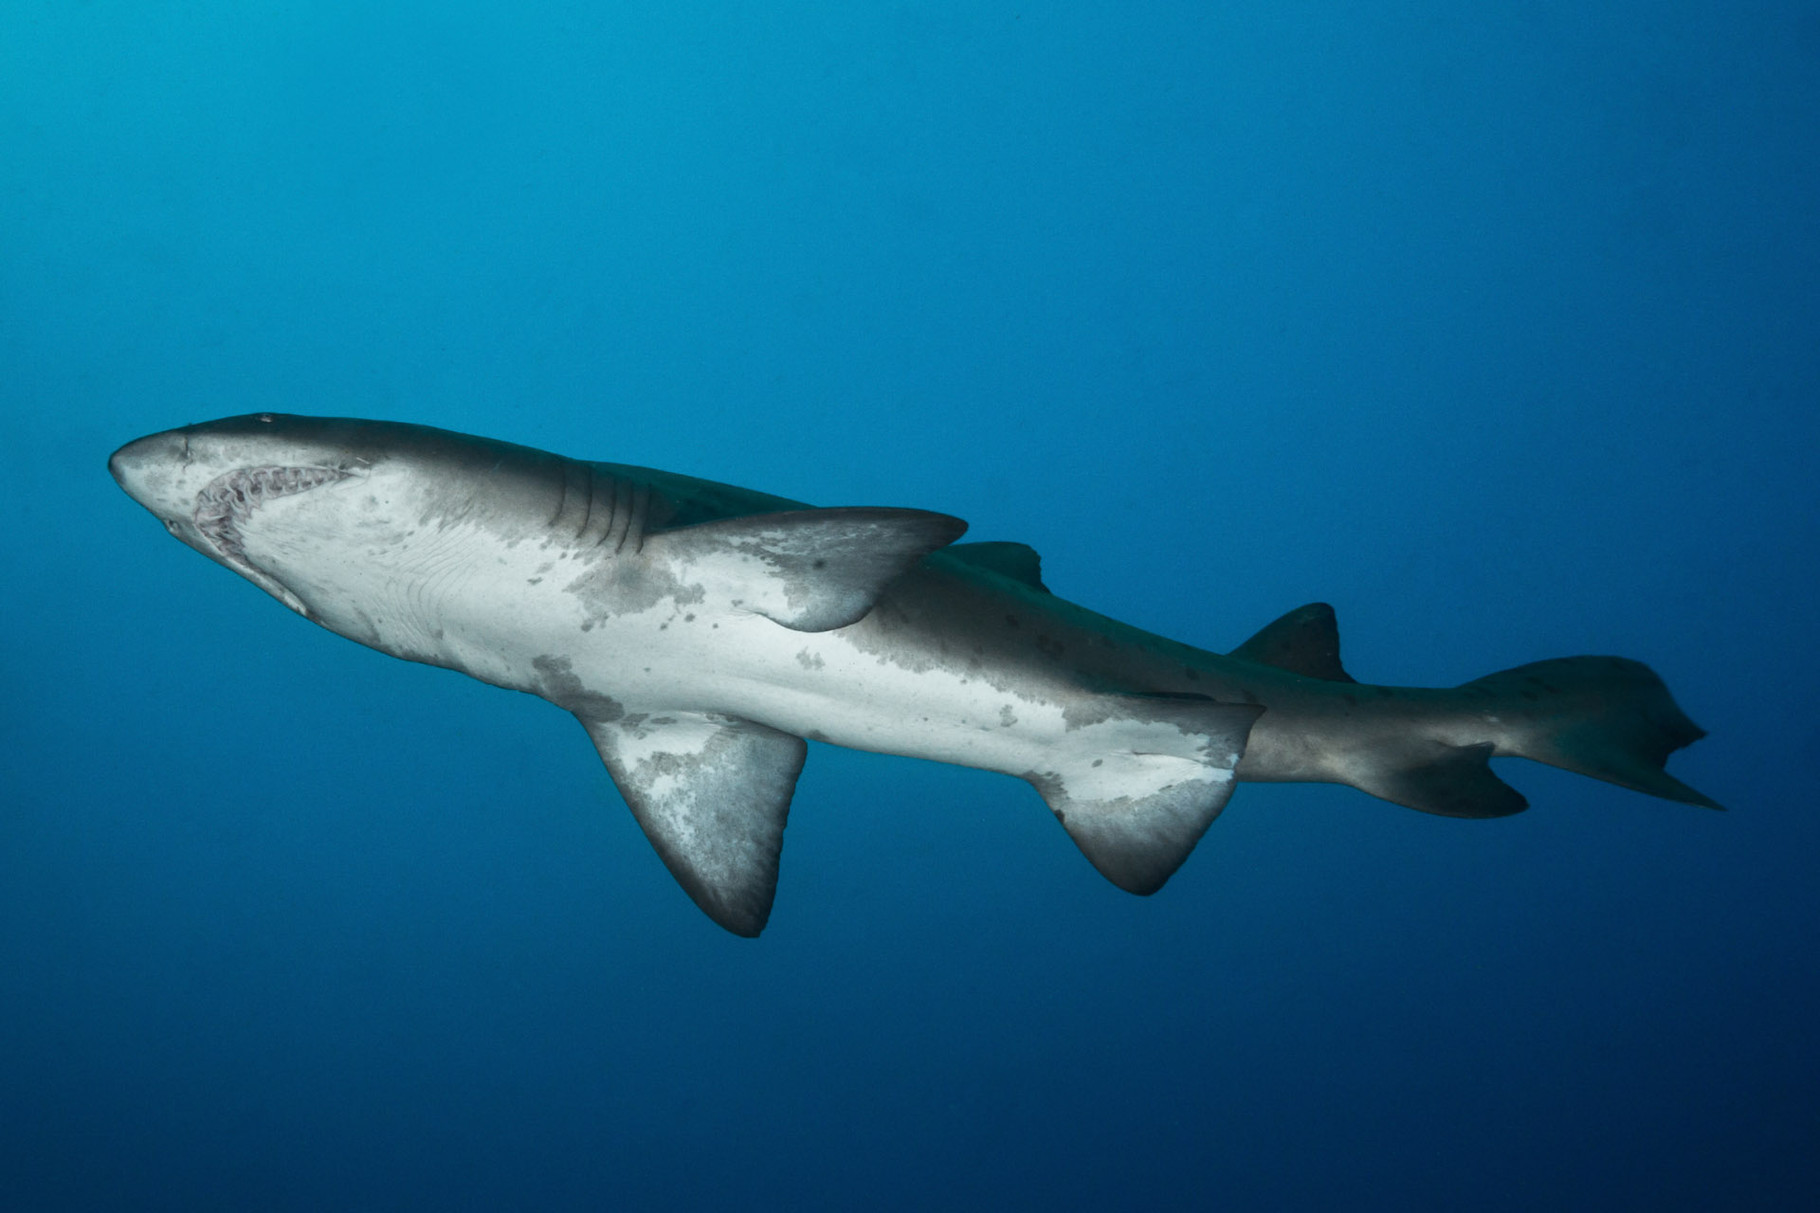 Raggie (Ragged tooth shark or Sandtiger shark)